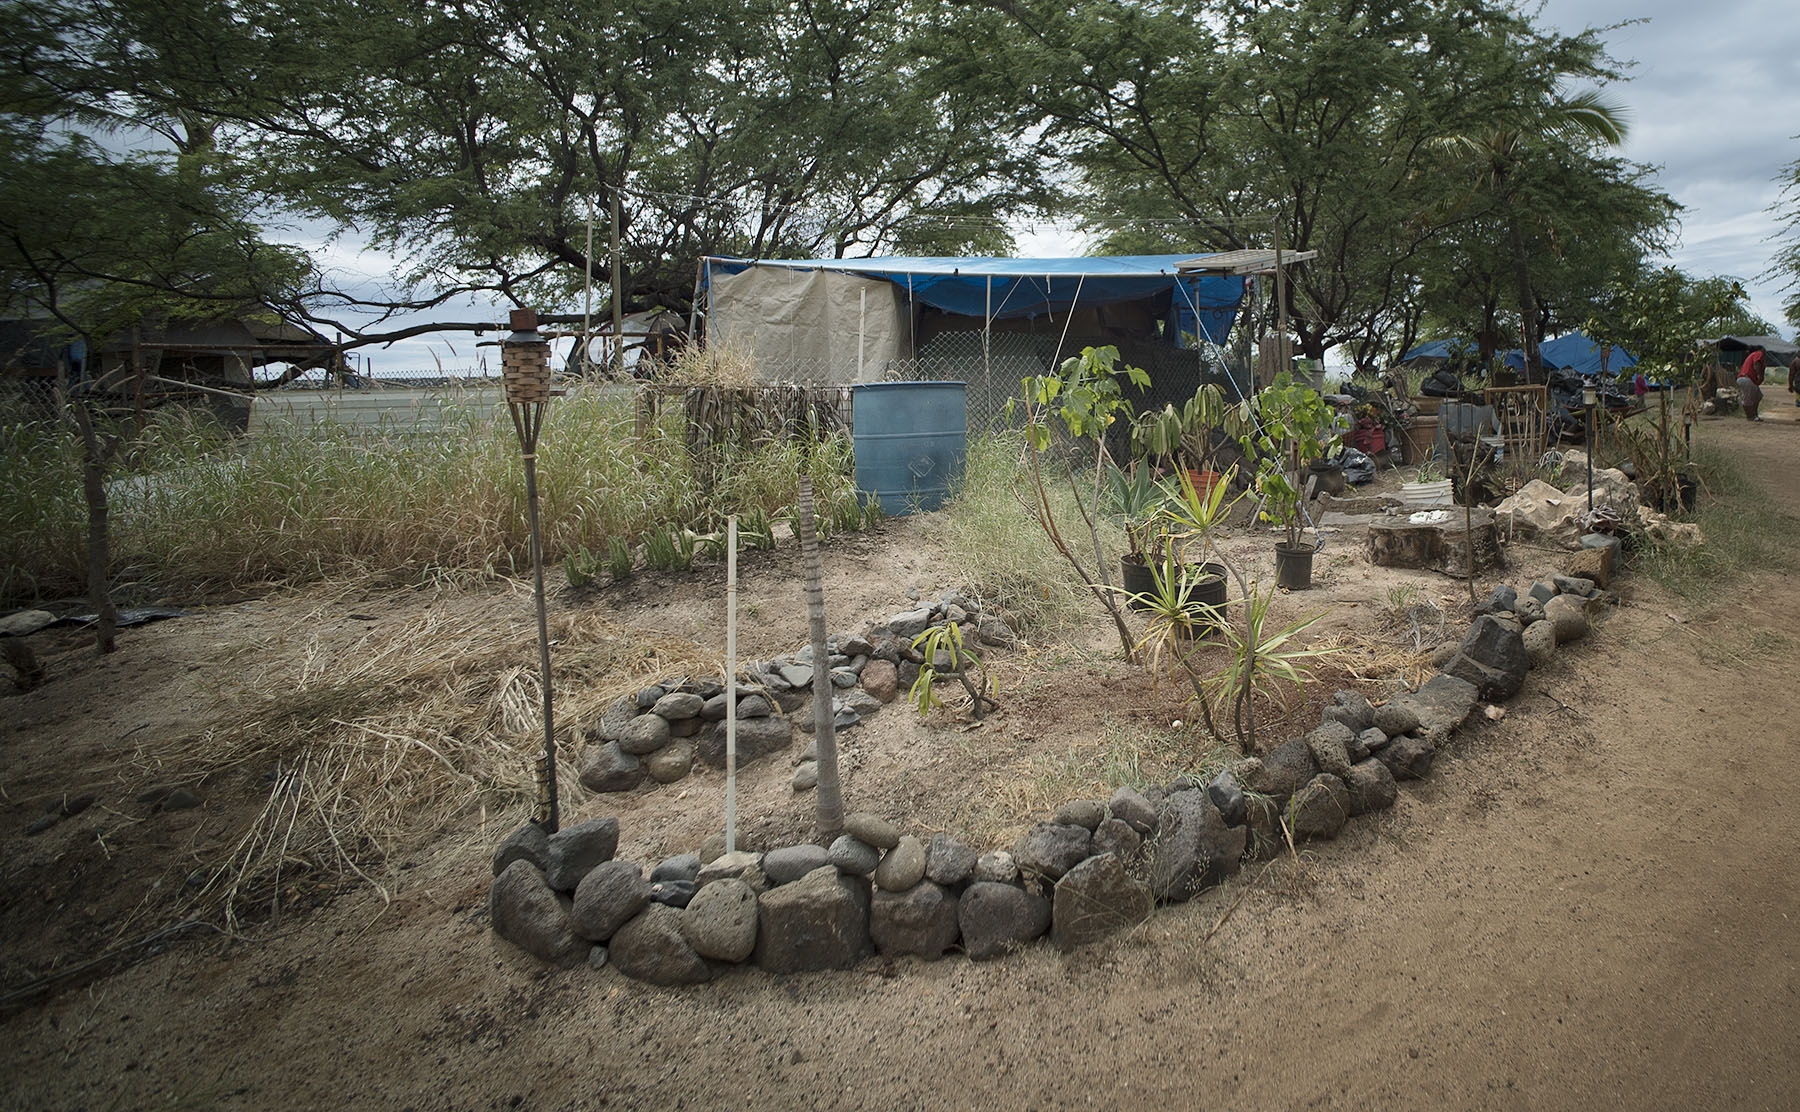 <p>Tita landscaped the area around her tent with tiki torches and a small plastic tub that she hopes to turn into a solar-powered water fountain.</p>